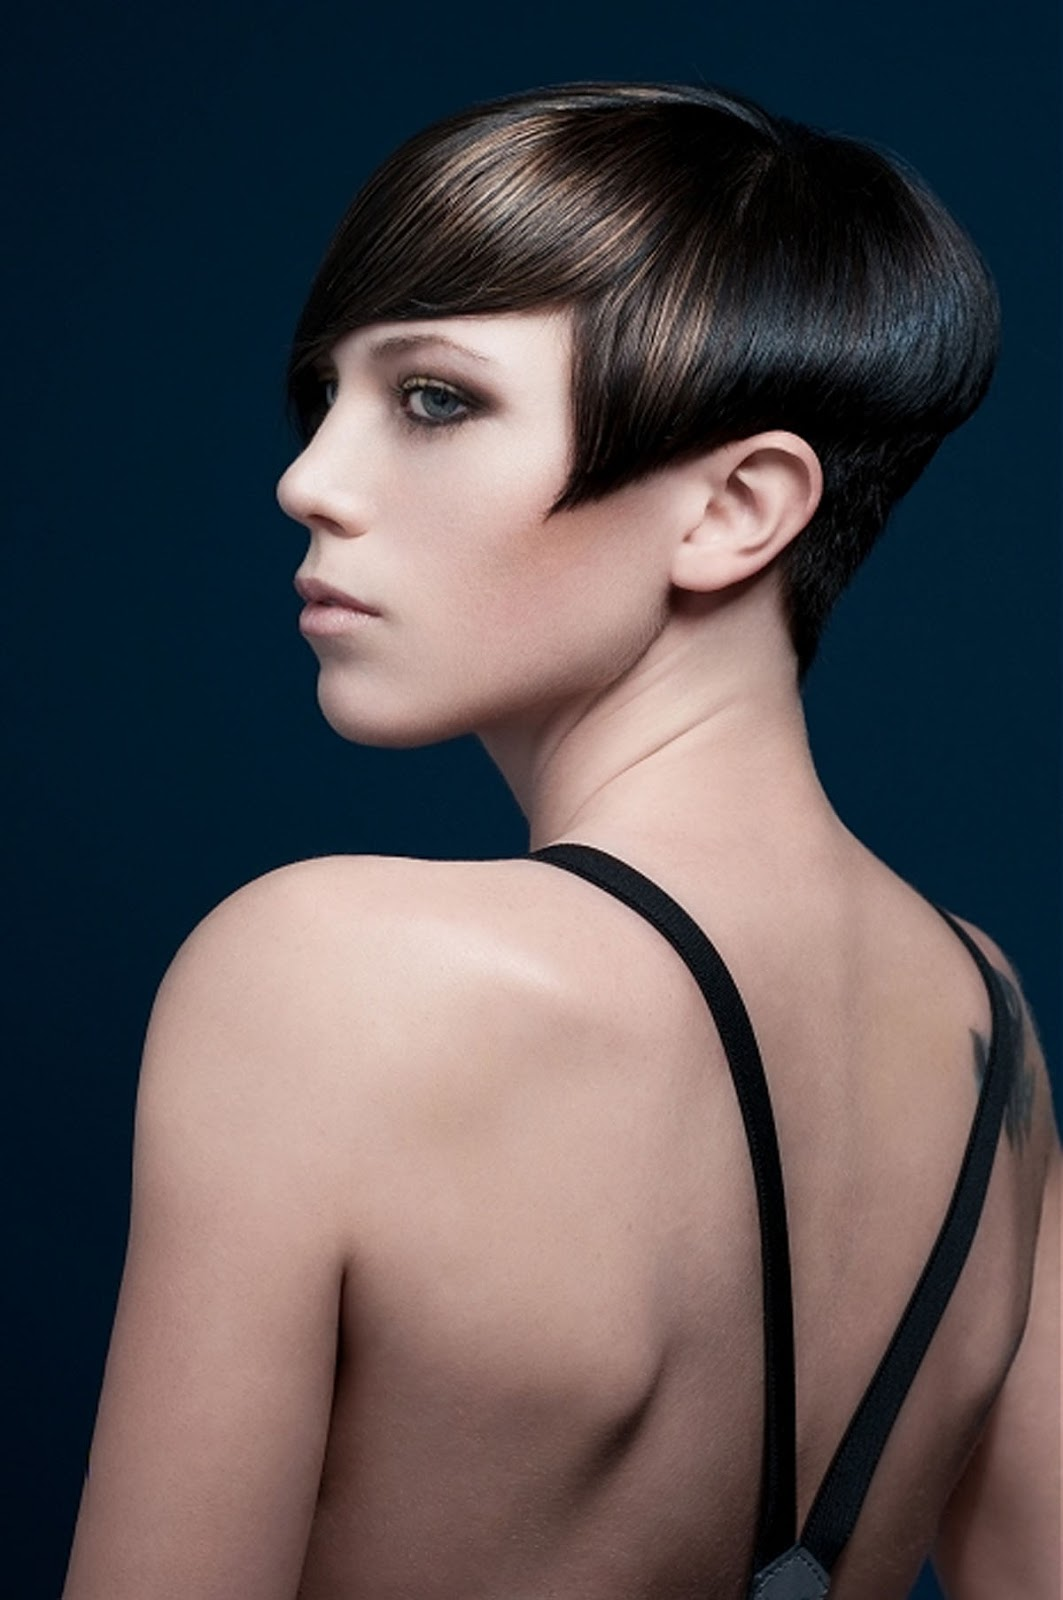 Hairstyle For Short Hair On Jeans : Love Clothing: Too Cool For School - Short Hair For Girls